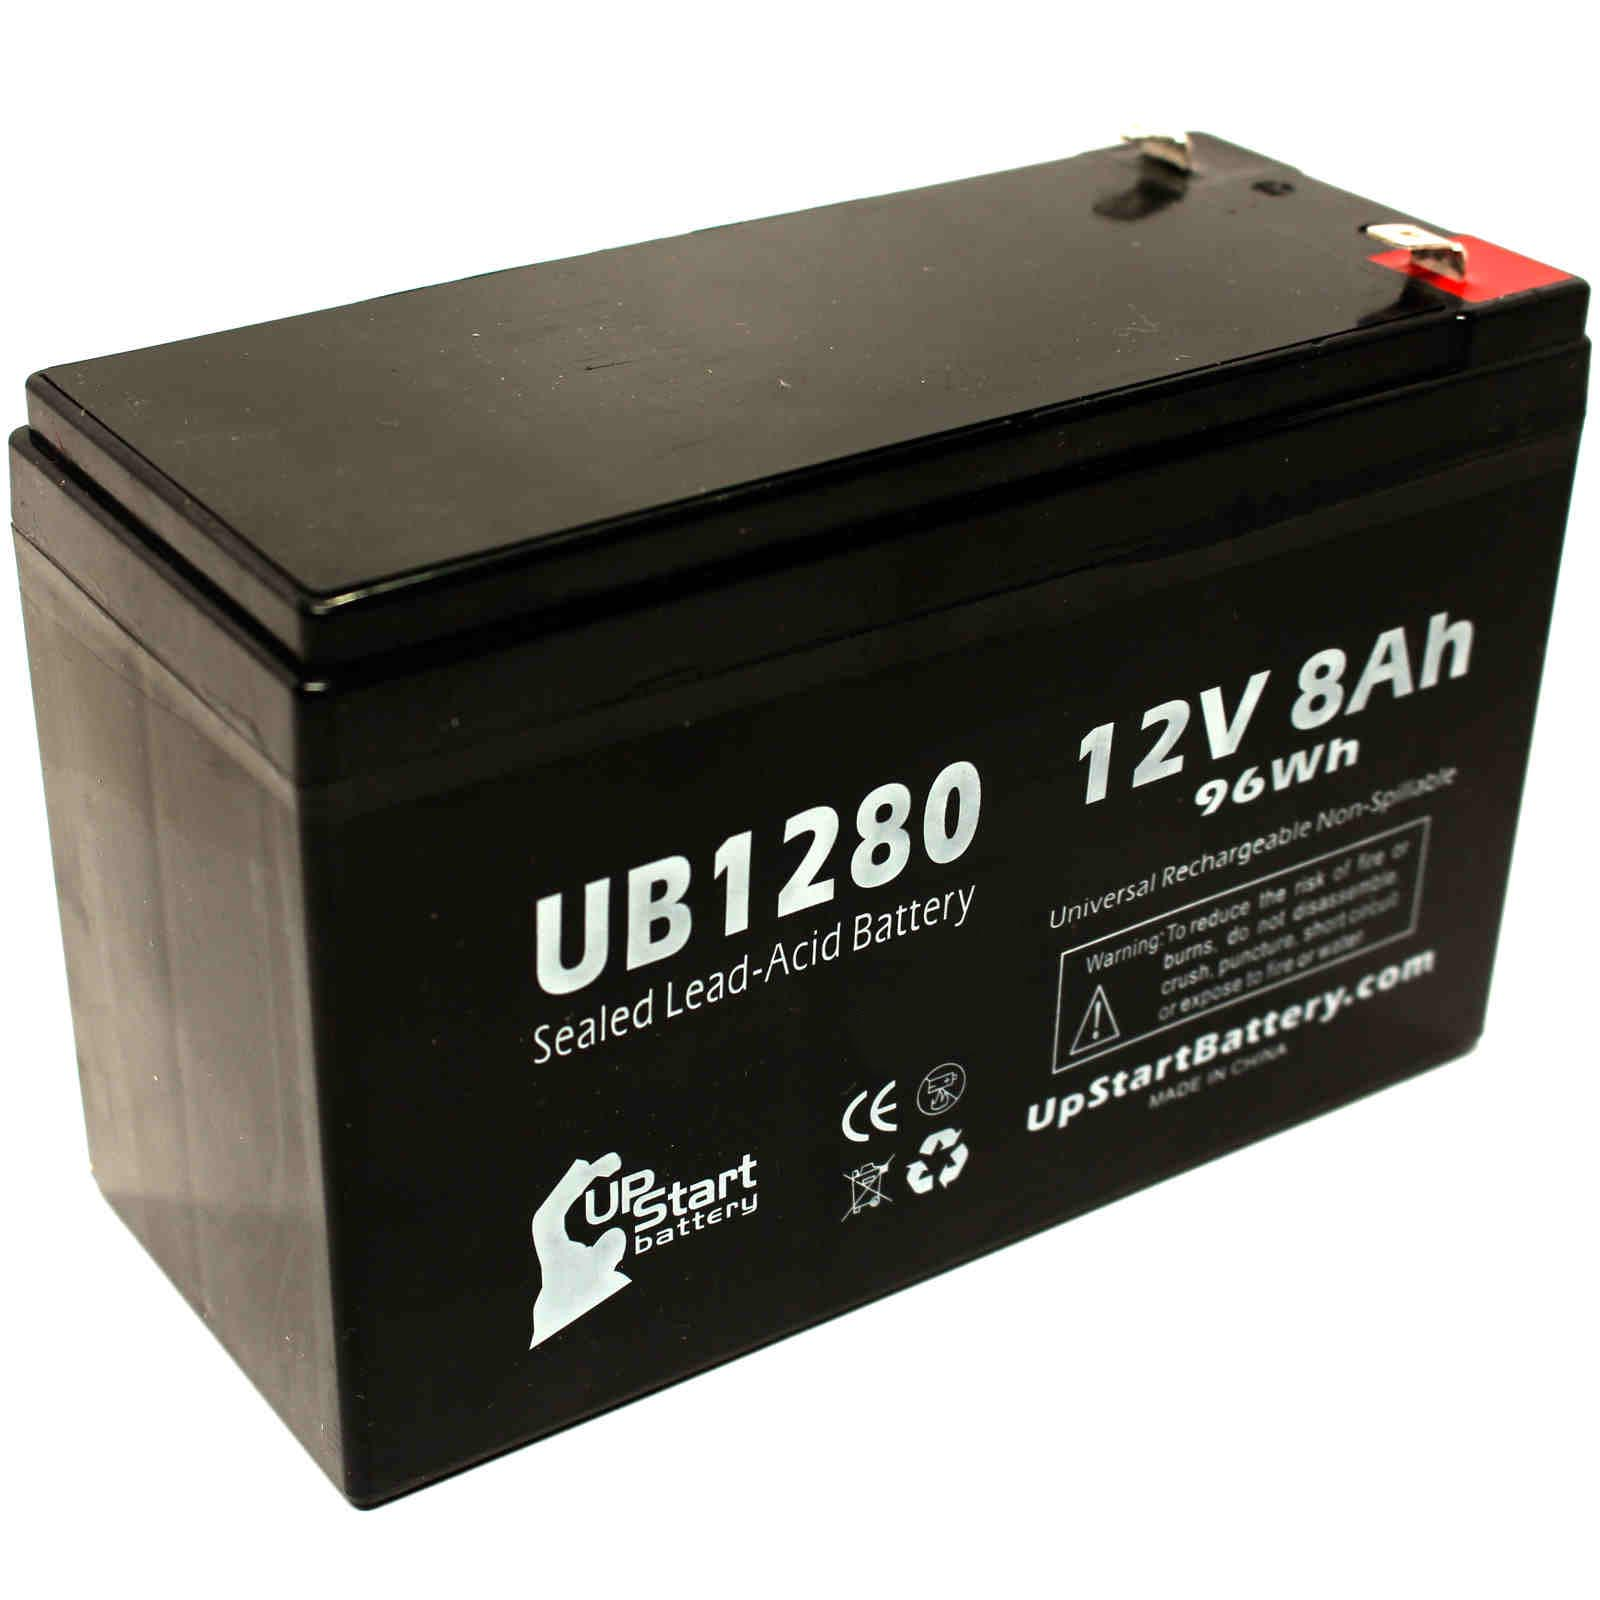 Tripp Lite SMART750USB Battery Replacement - UB1280 Universal Sealed Lead Acid Battery (12V, 8Ah, 8000mAh, F1 Terminal, AGM, SLA) - Includes TWO F1 to F2 Terminal Adapters - image 4 of 4